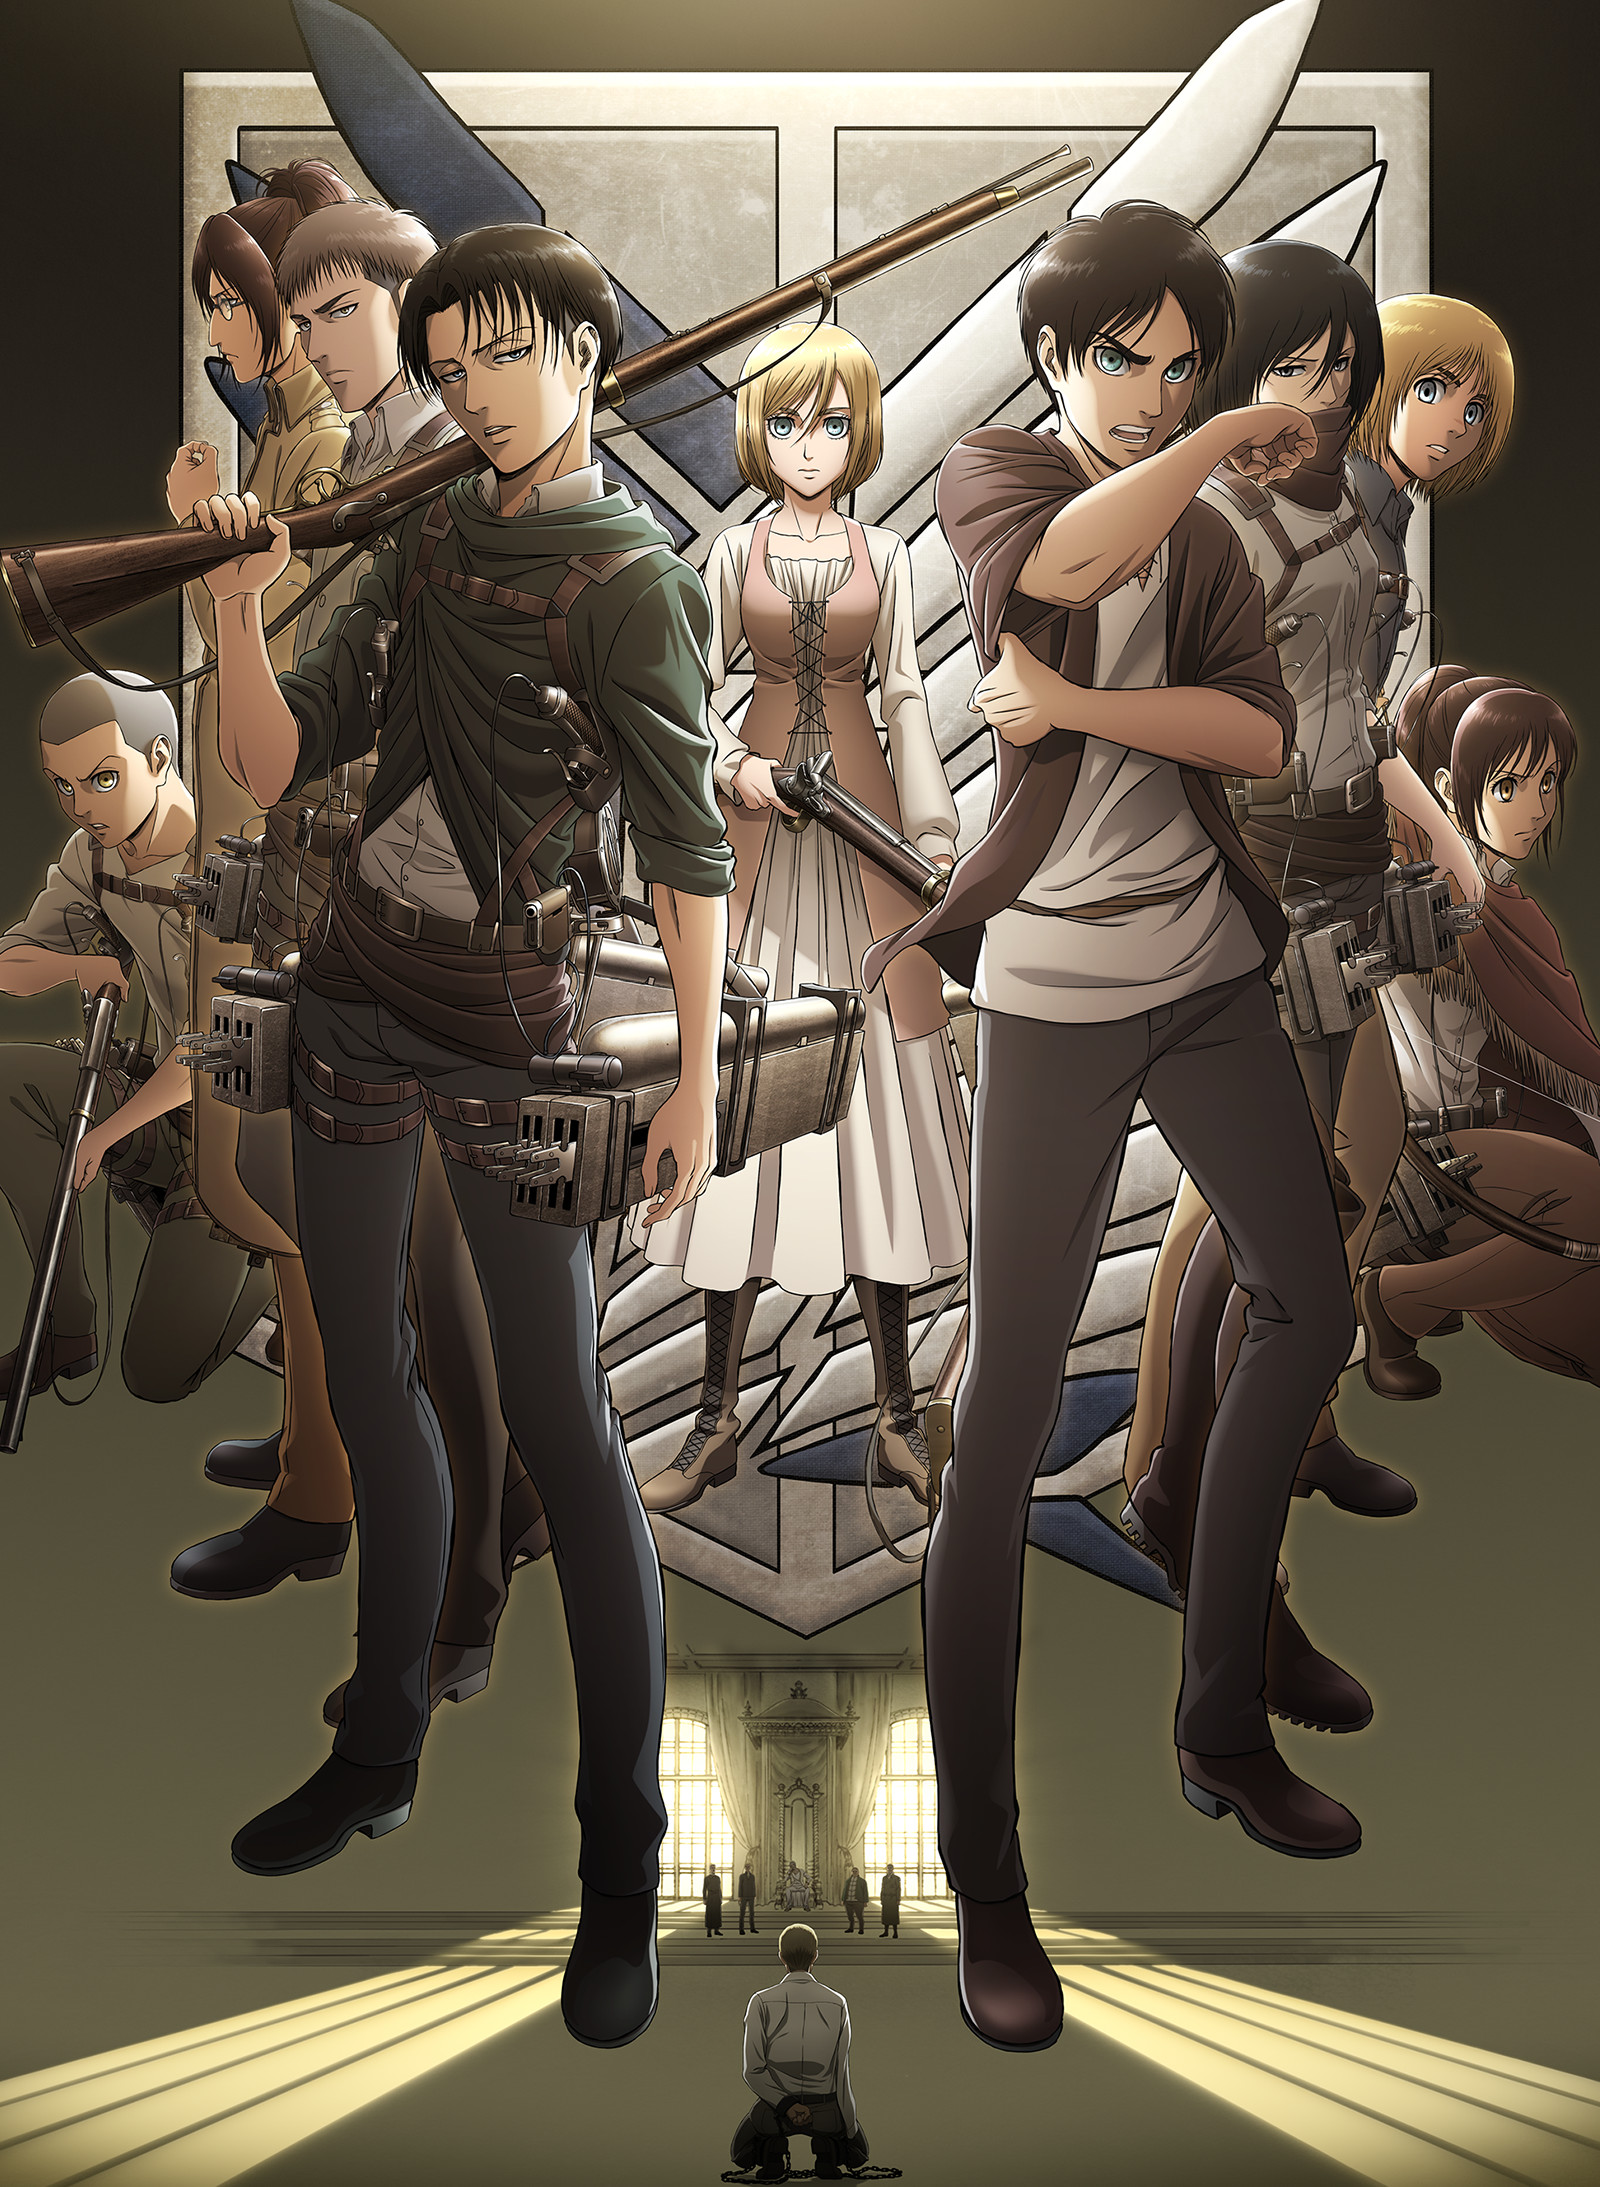 Attack on titan capitulo 22 online dating 3